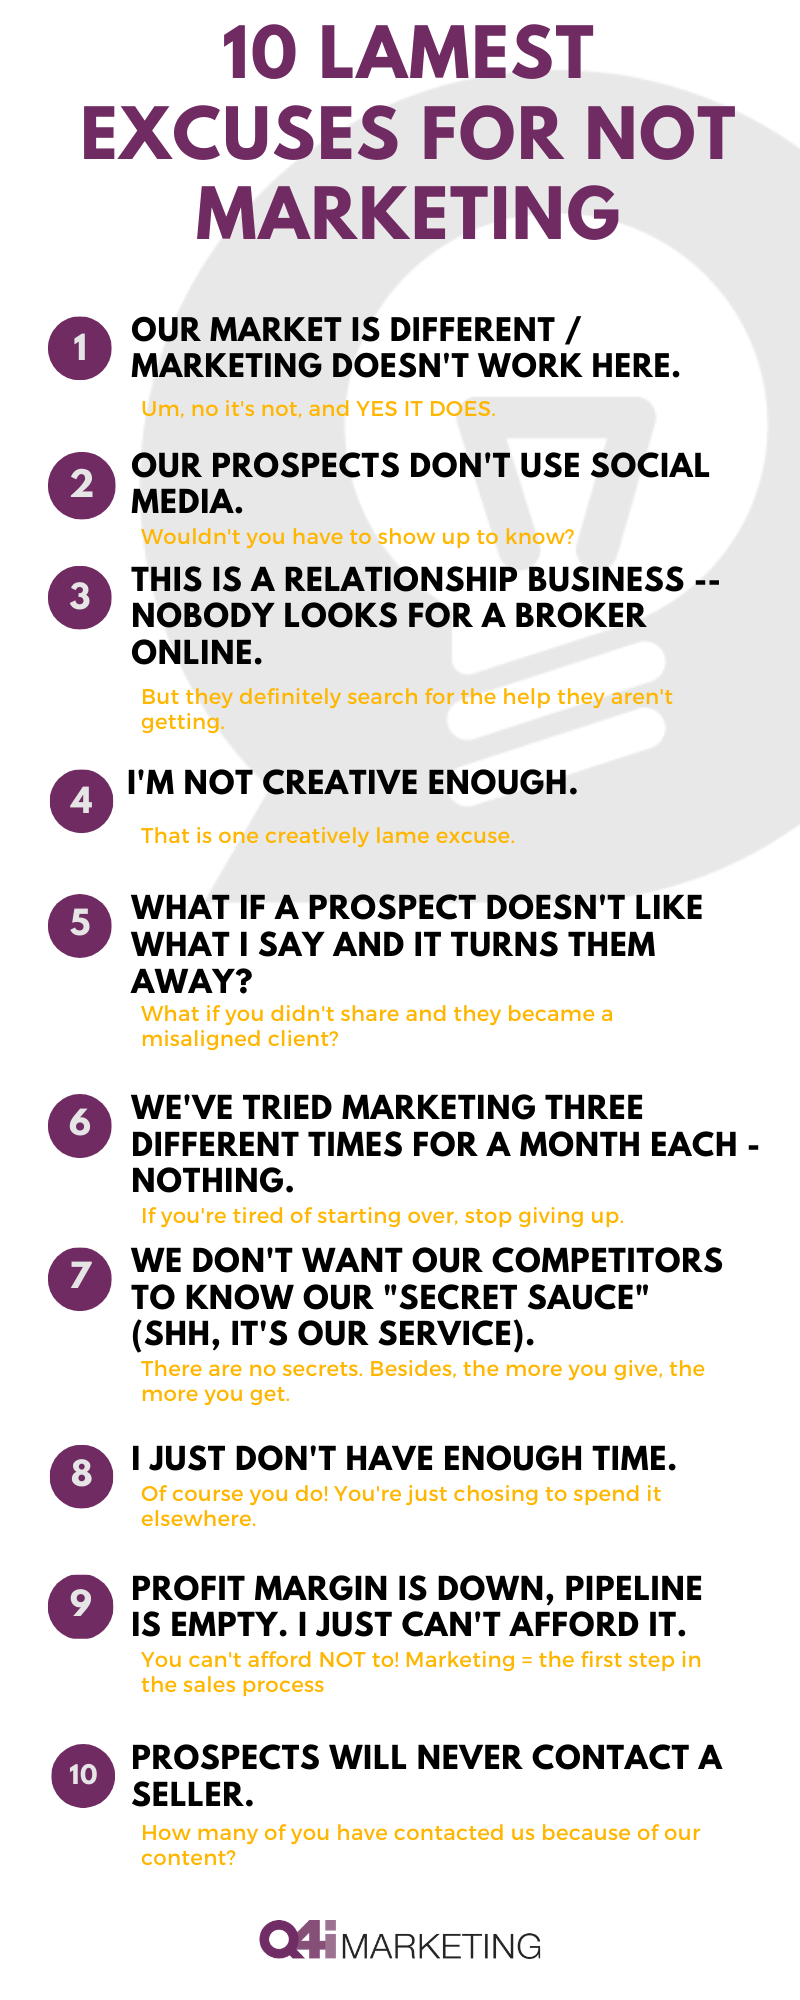 10 lamest excuses for not marketing